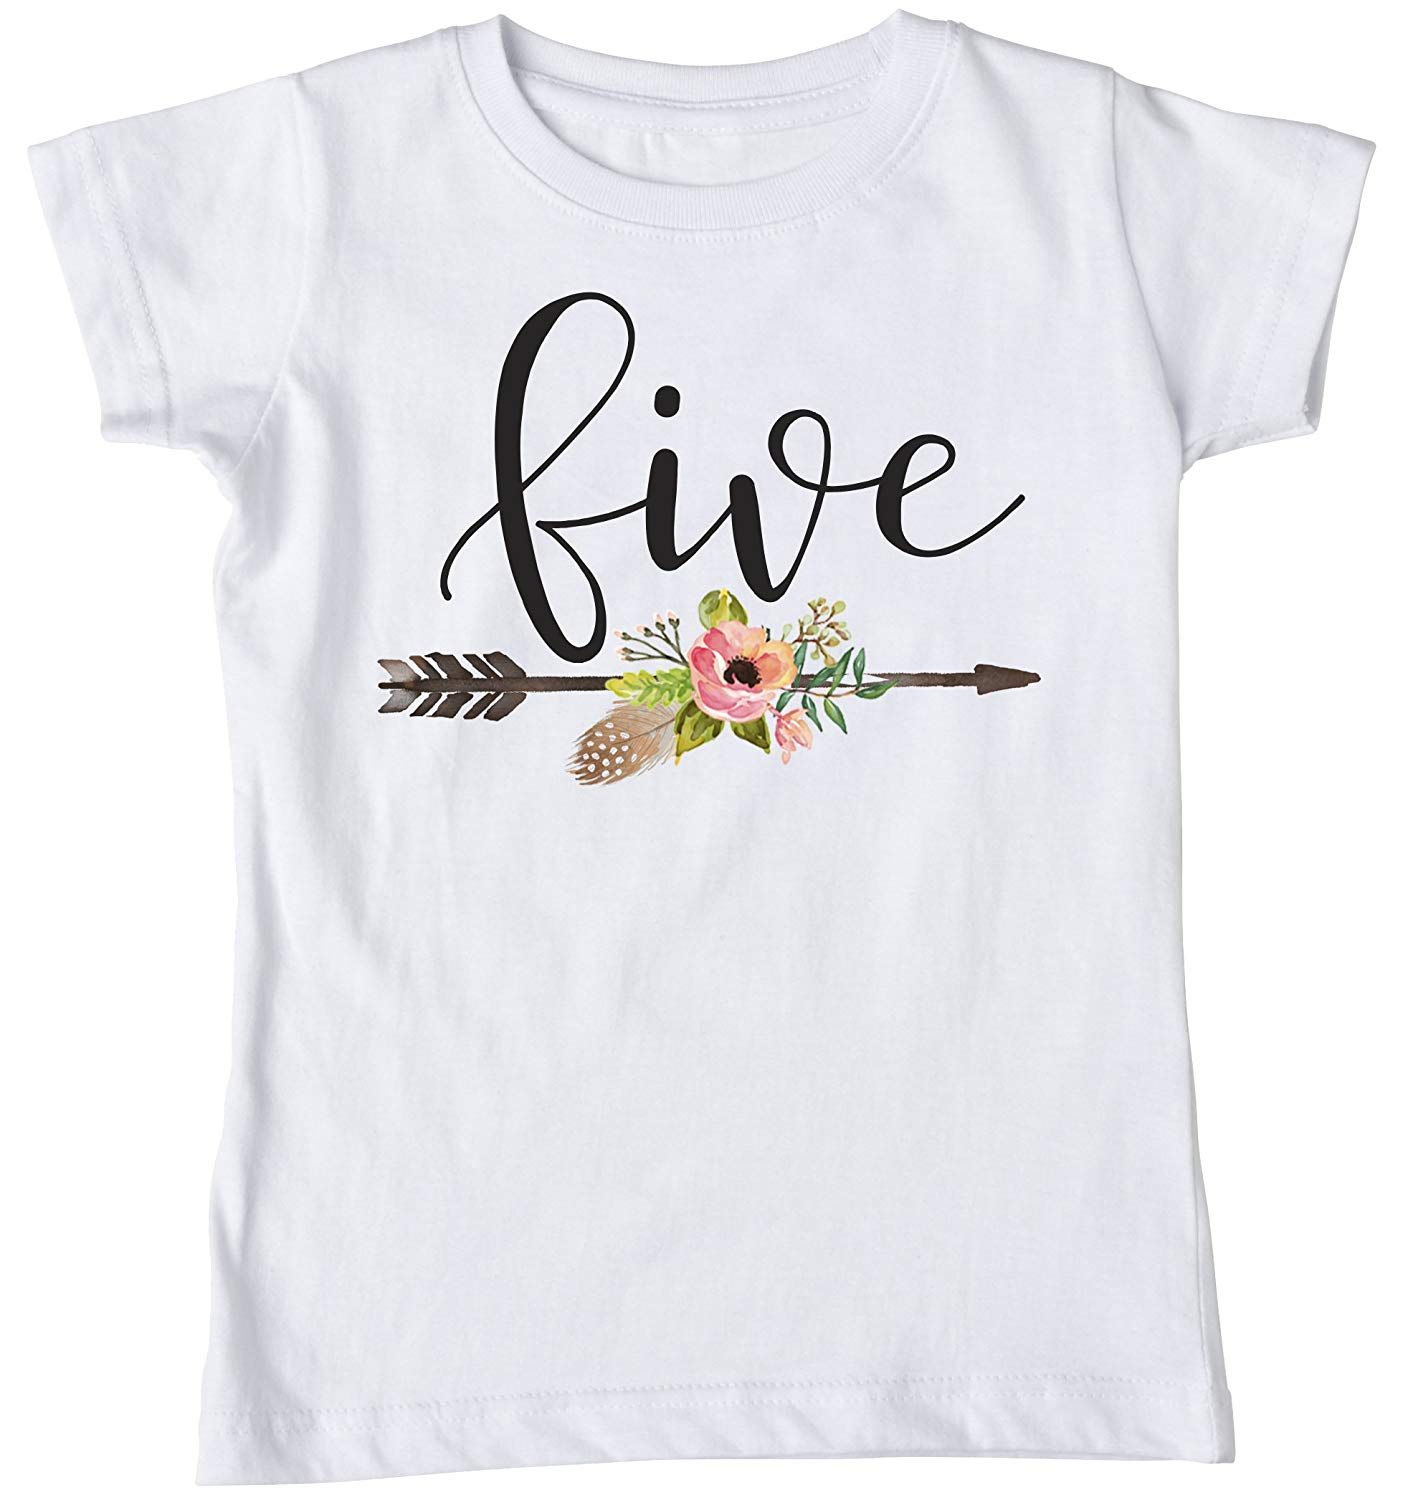 Get Quotations Fifth Birthday Five Shirt Boho Bohemian